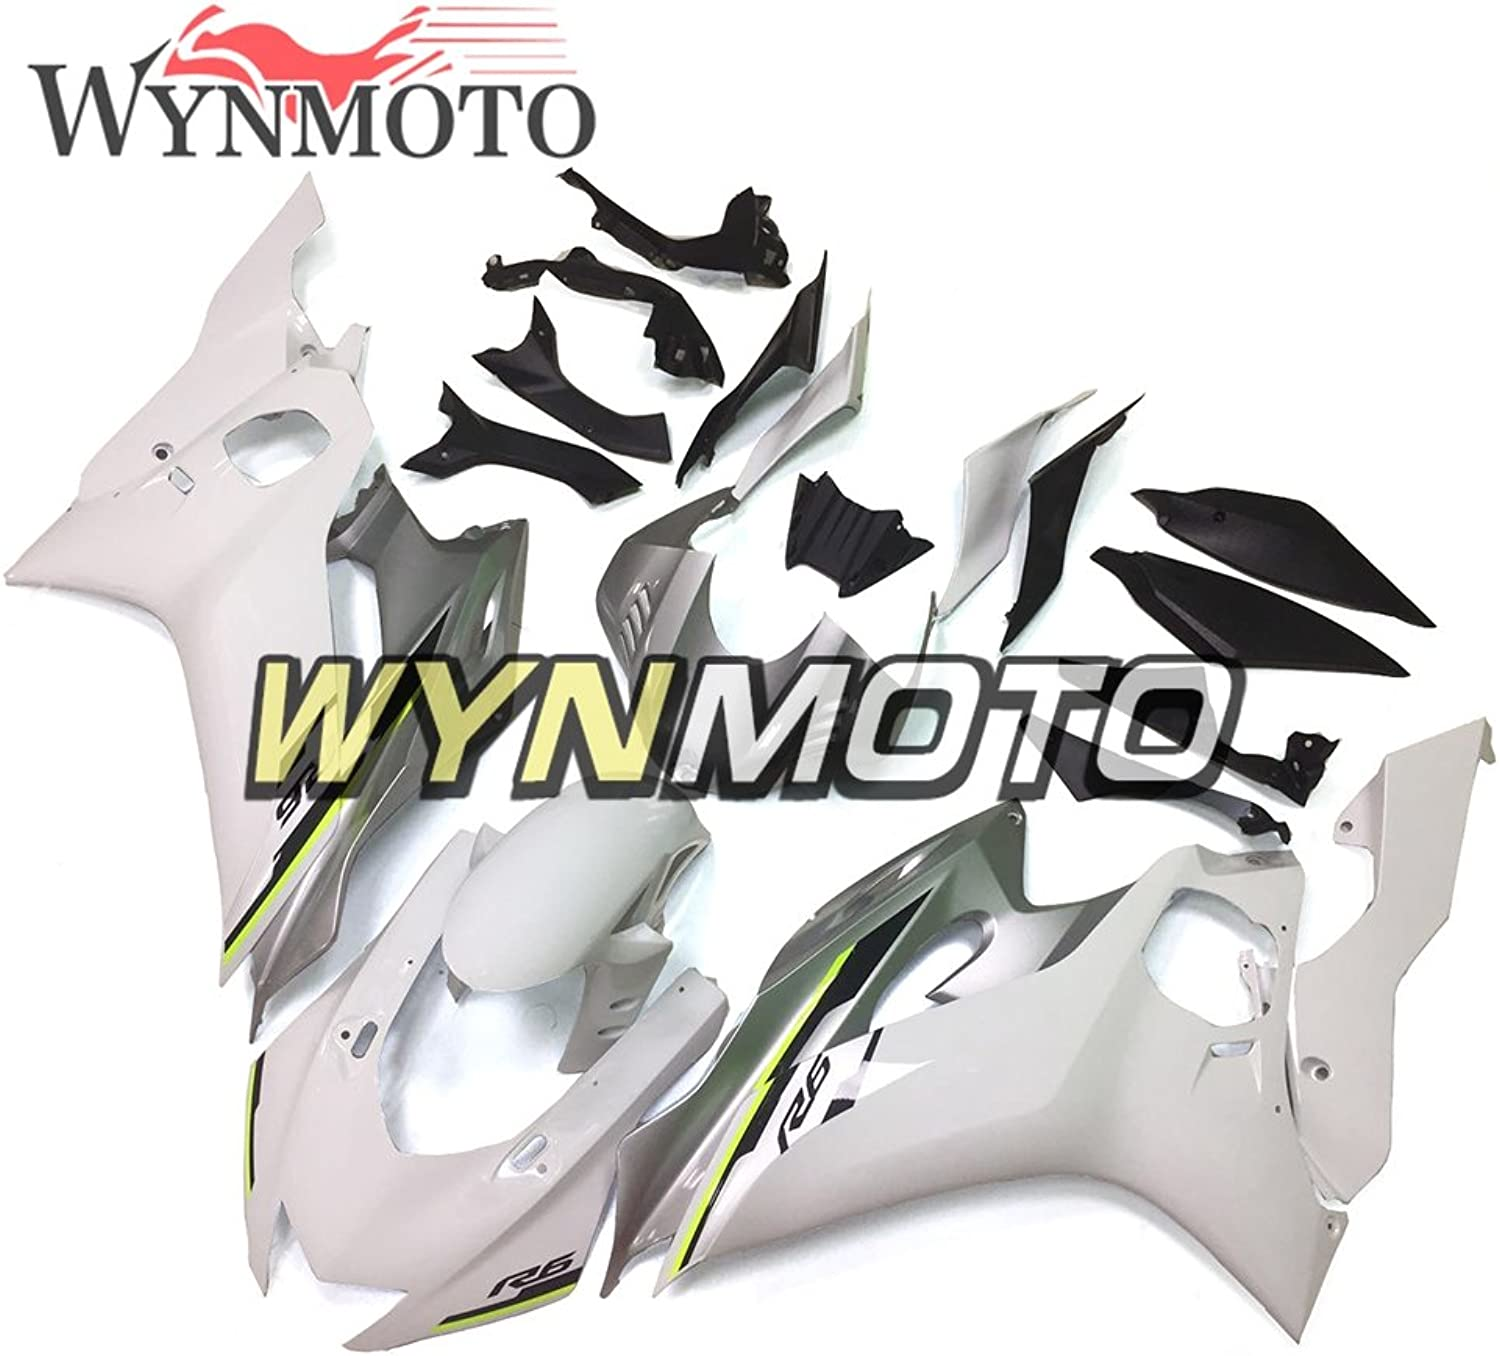 WYNMOTO White Silver Complete Motorcycle Fairing Kit for Yamaha YZF600 R6 Year 2017 Bodywork ABS Plastic Injection New Cowlings